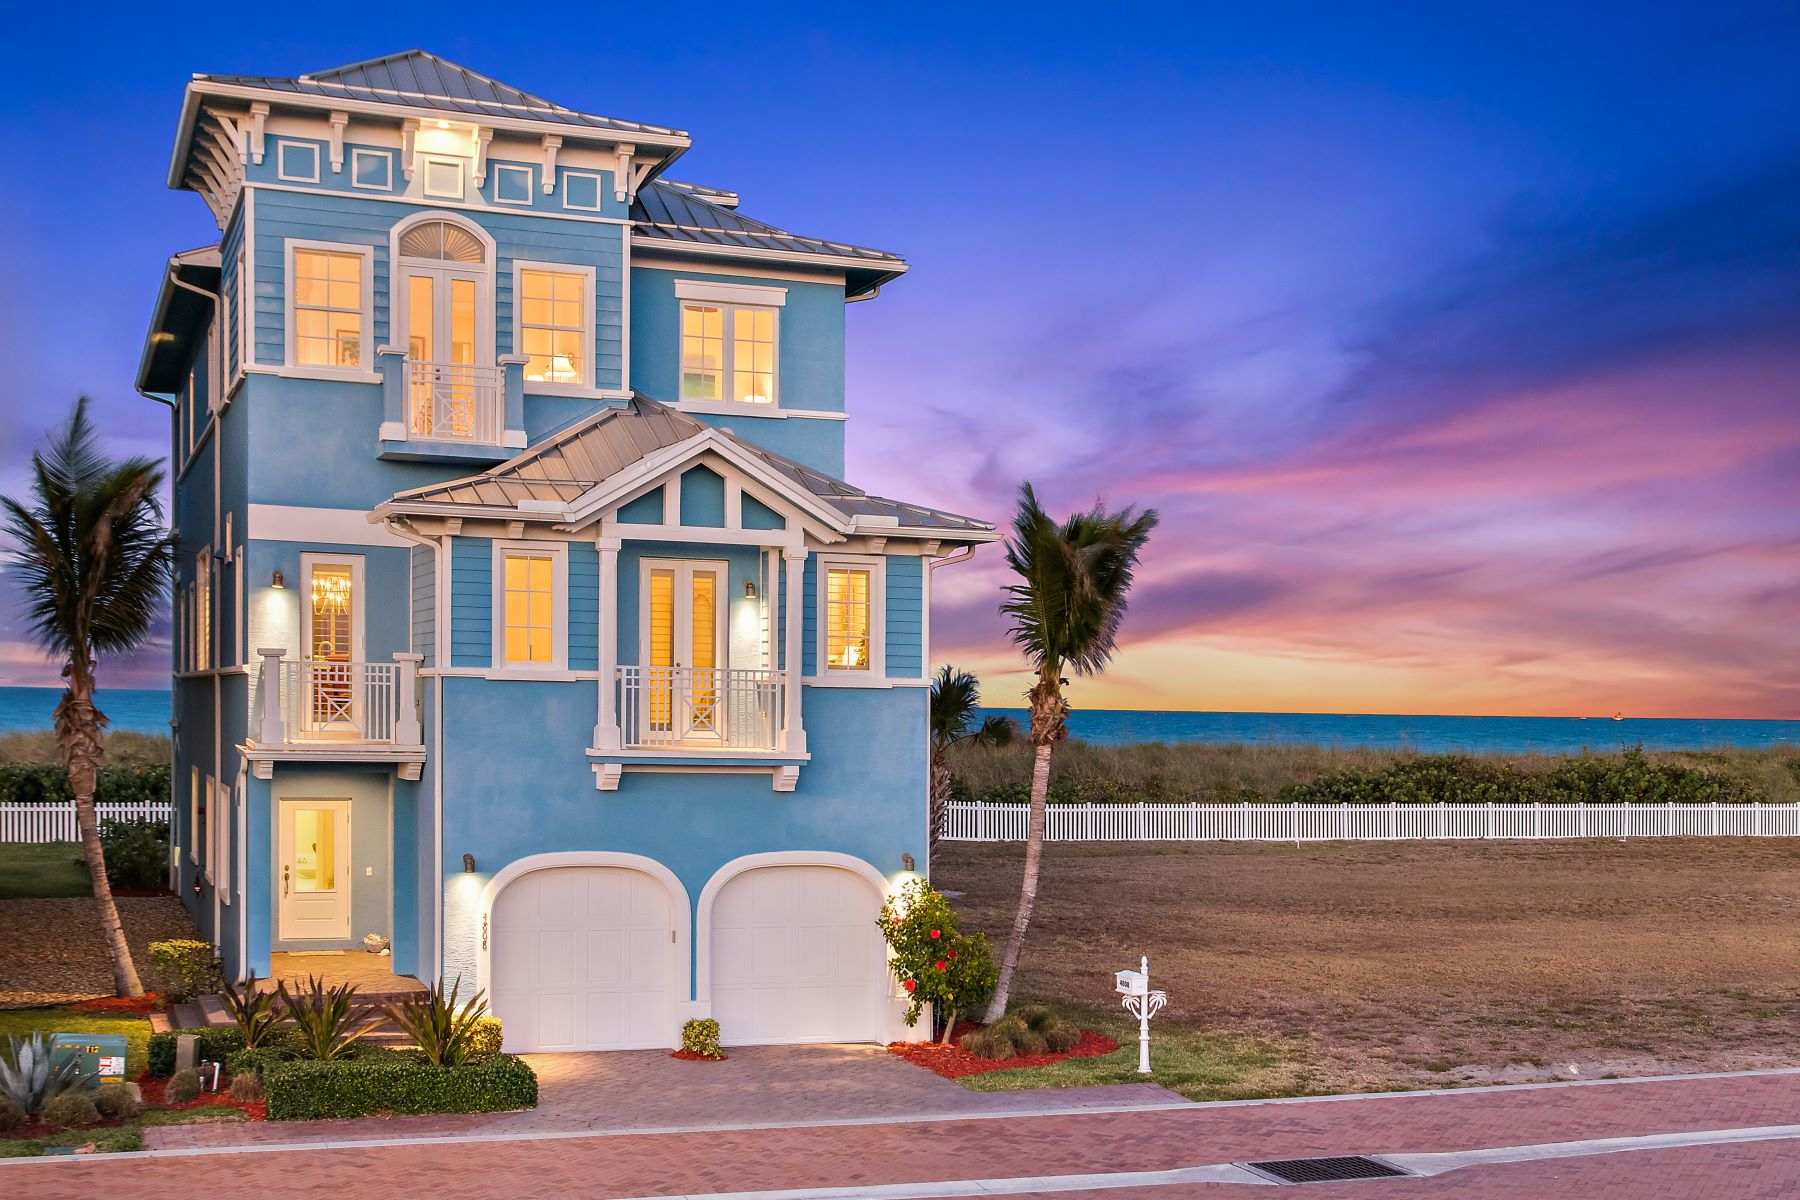 Casa Unifamiliar por un Venta en 4808 Watersong Way 4808 Watersong Way Hutchinson Island, Florida 34949 Estados Unidos